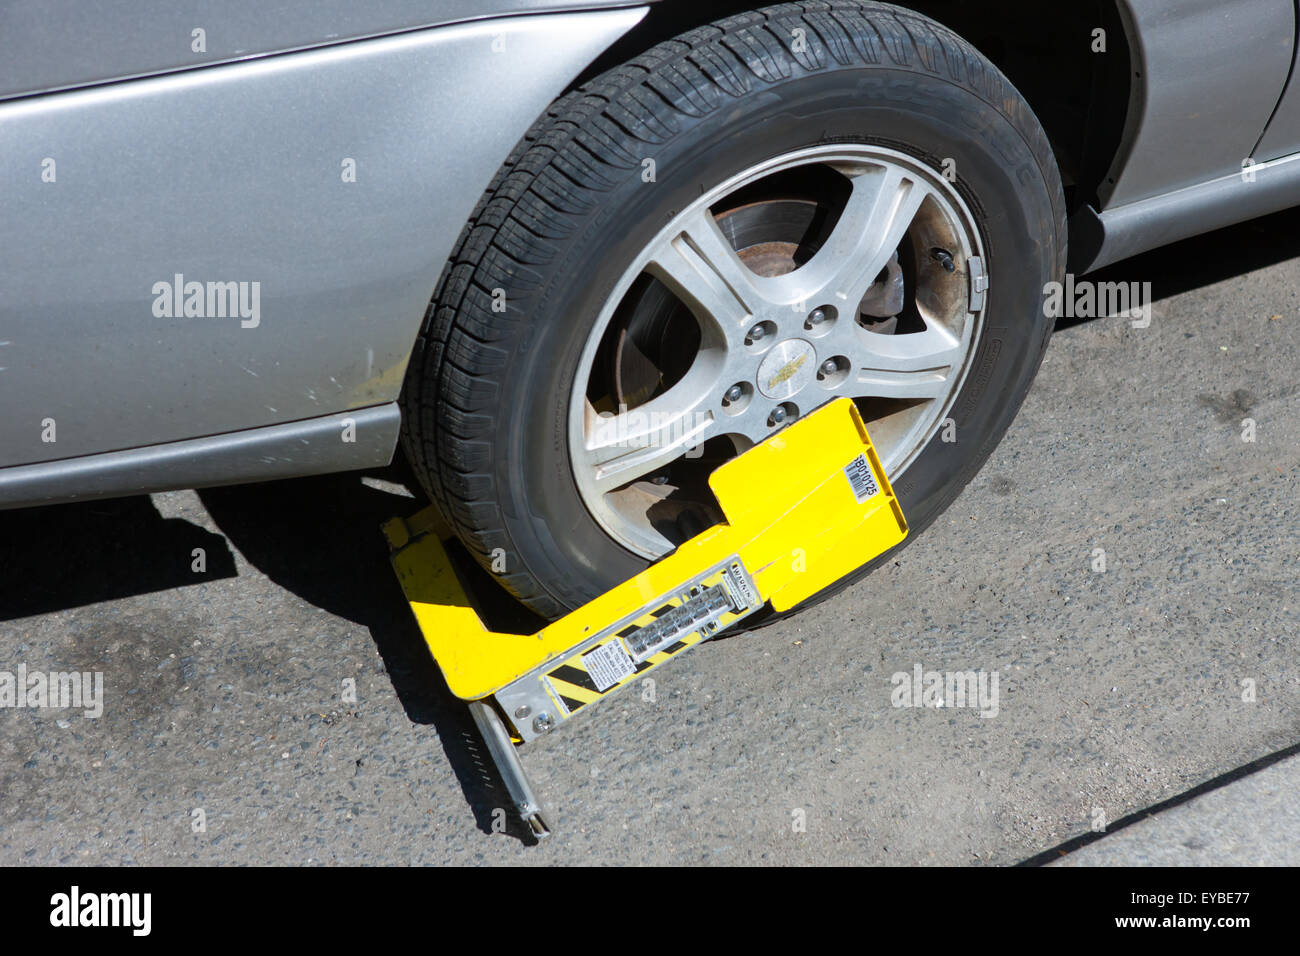 A Paylock tire boot immobilizes a car with outstanding parking violations in New York City. - Stock Image